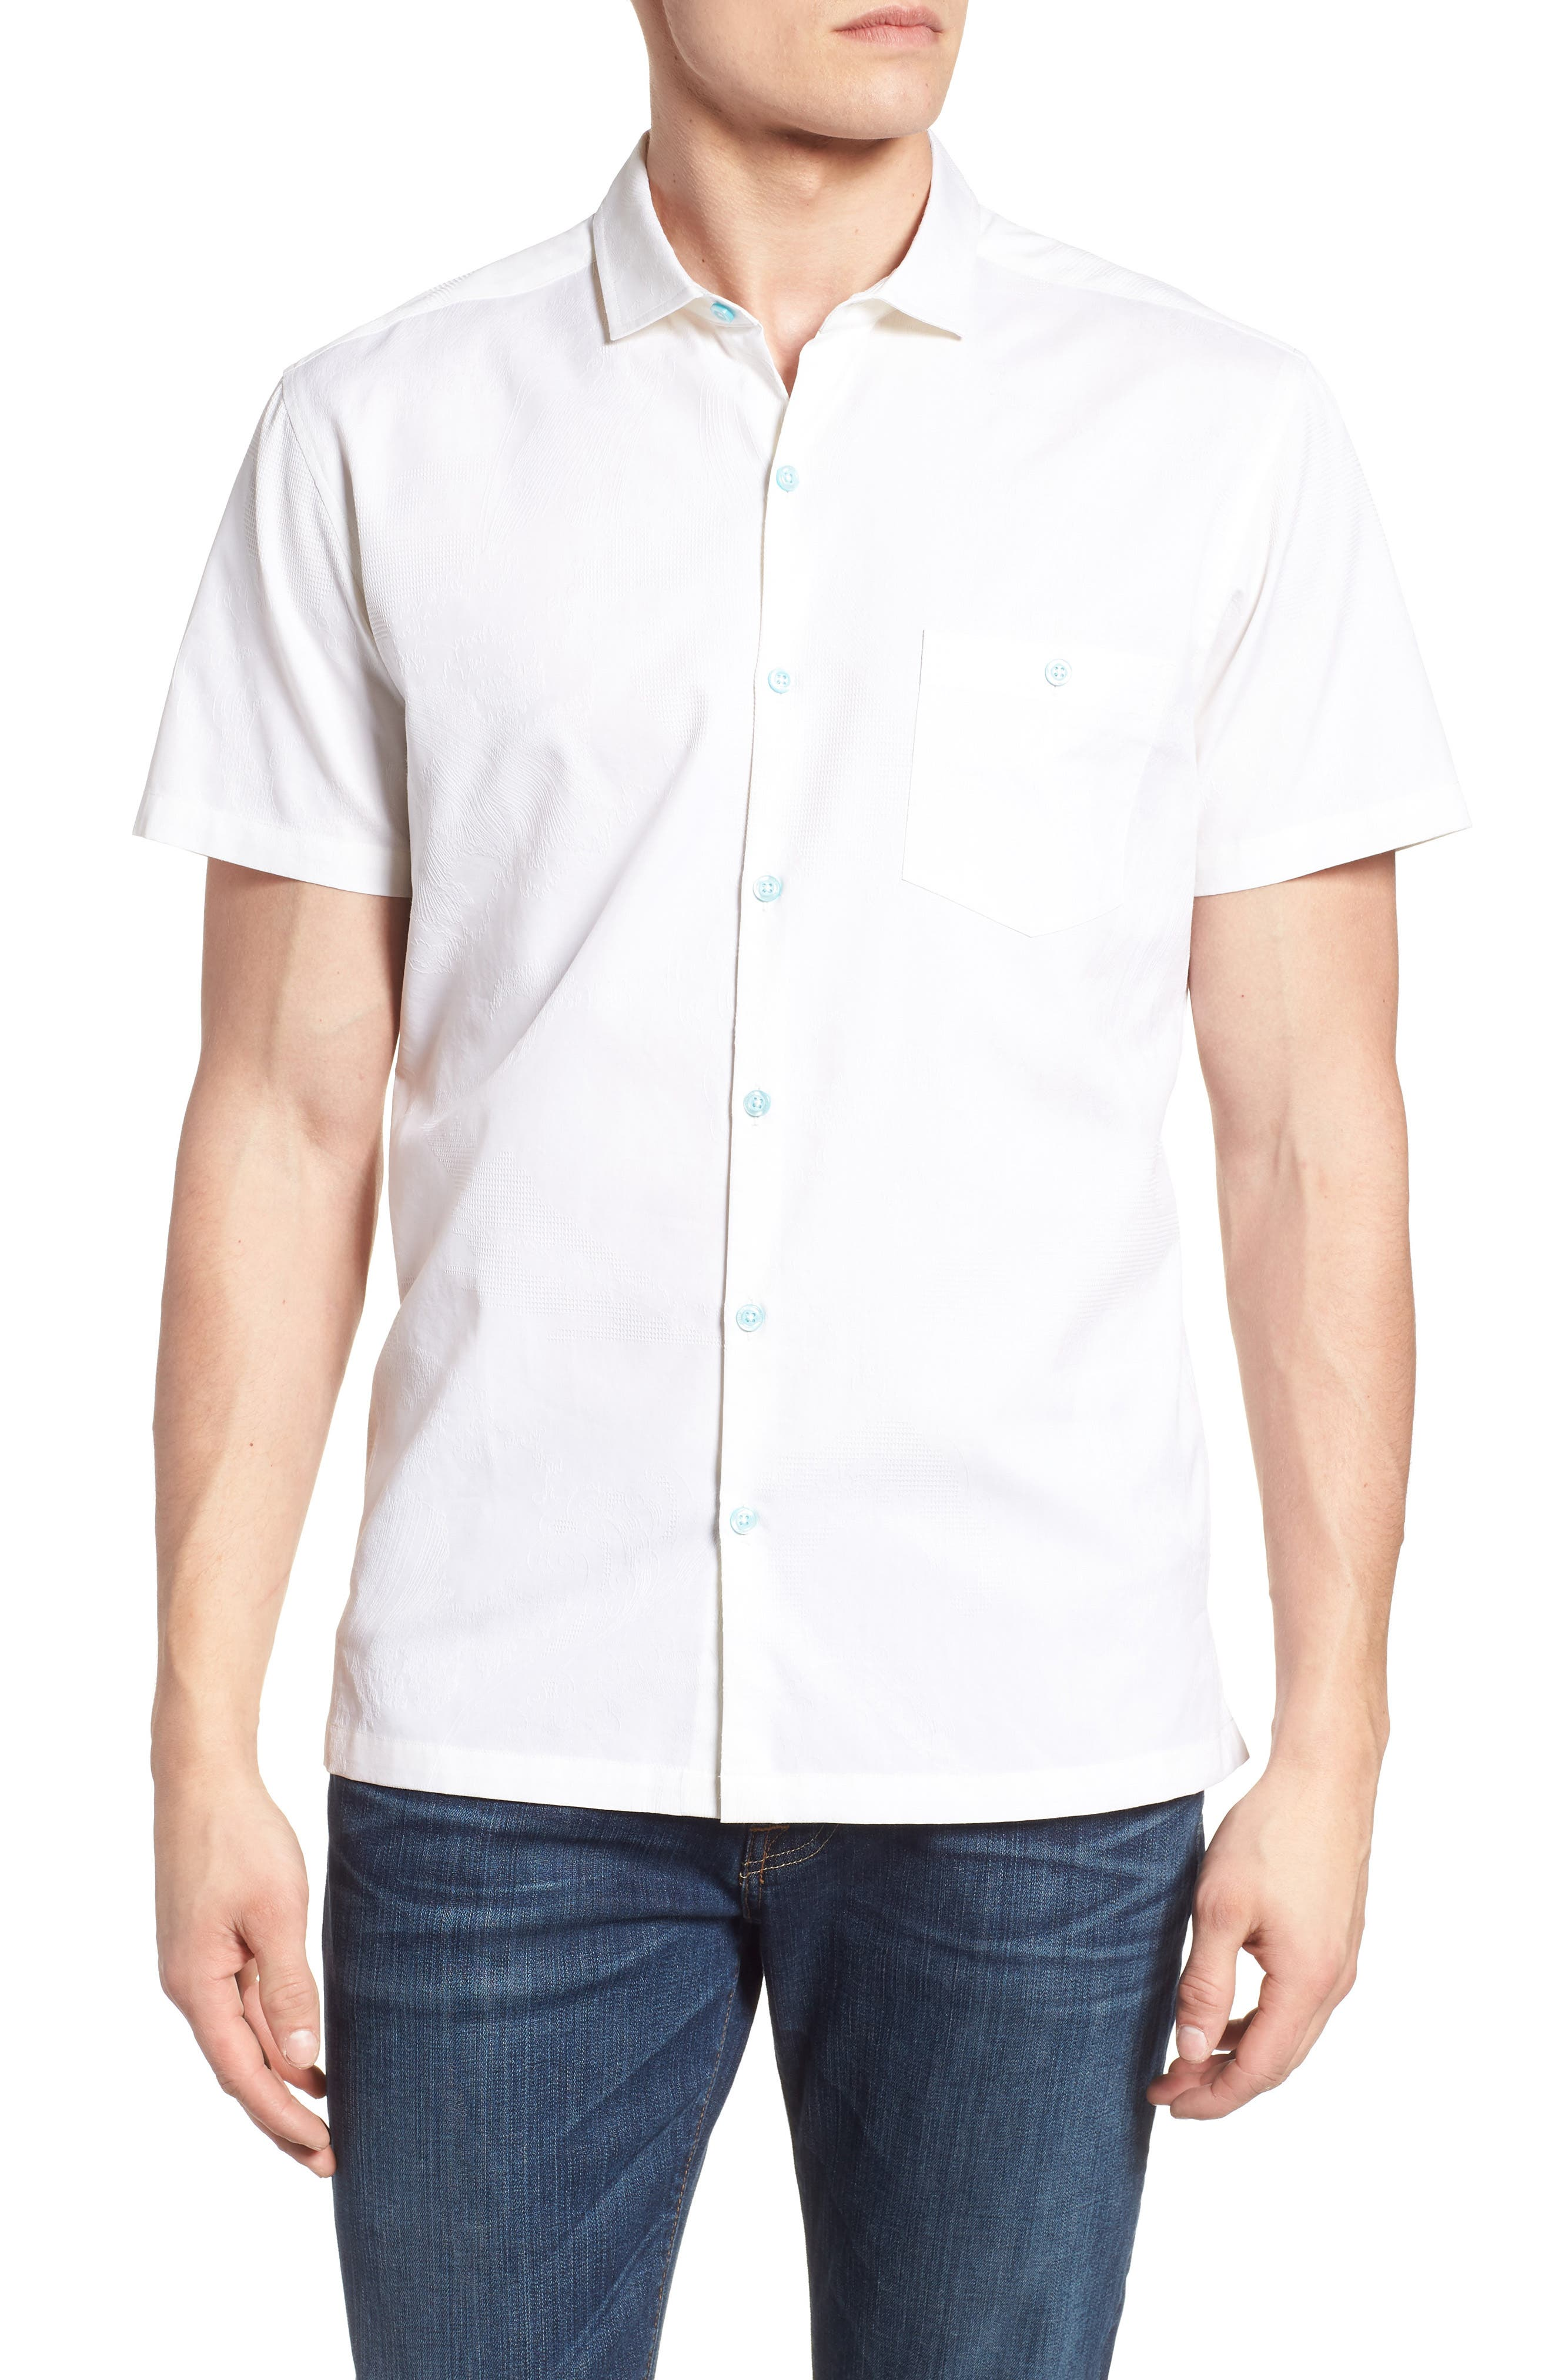 Seas the Day Trim Fit Camp Shirt,                         Main,                         color, WHITE